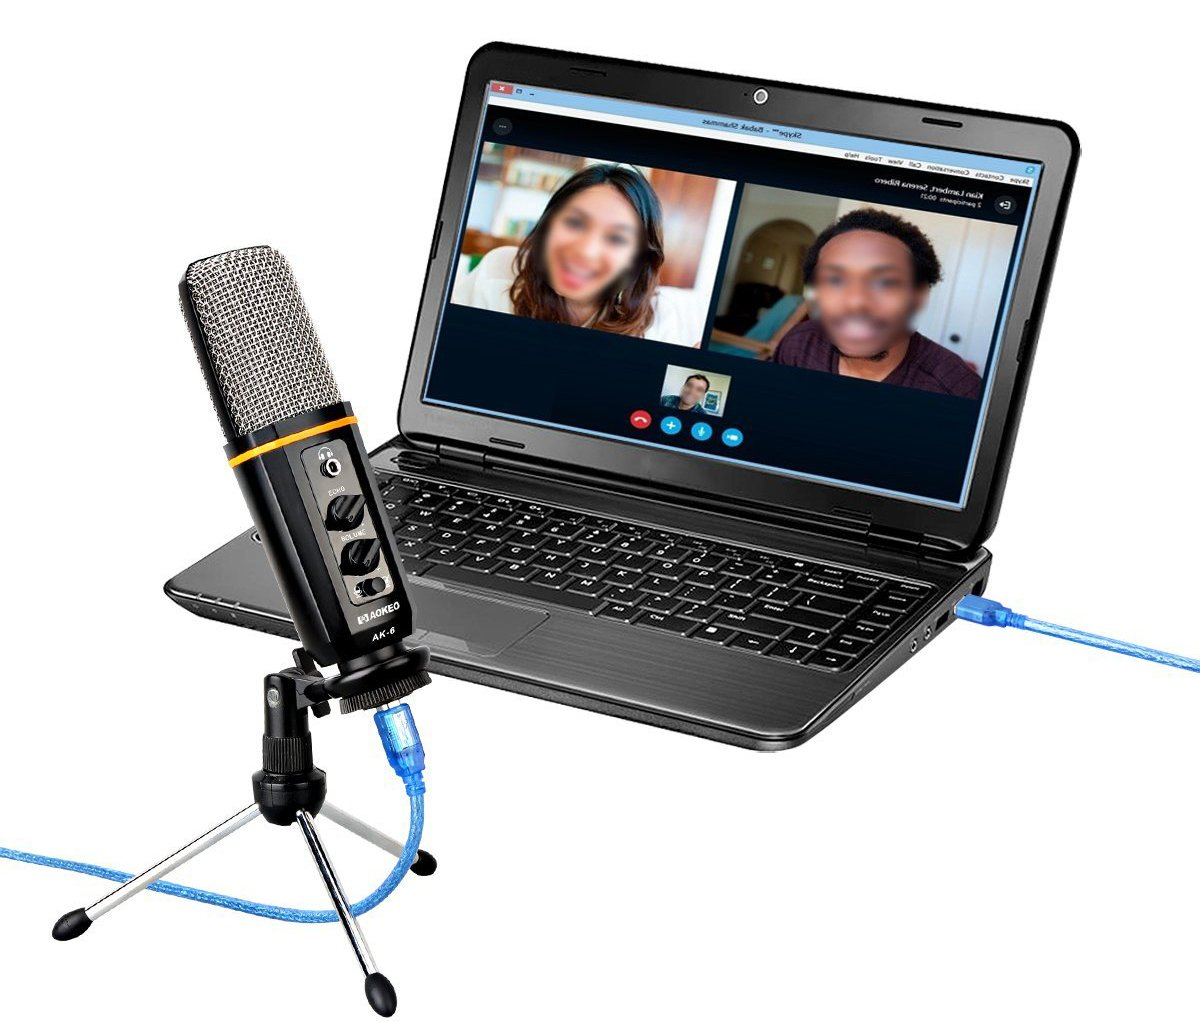 Aokeo's AK-6 Desktop USB Condenser Microphone, Best For Live Podcasting, Broadcasting, Skype, YouTube, Recording, Singing, Streaming, Video Call, Conference, Gaming, Etc. With Mount Stand, Plug & Play by aokeo (Image #3)